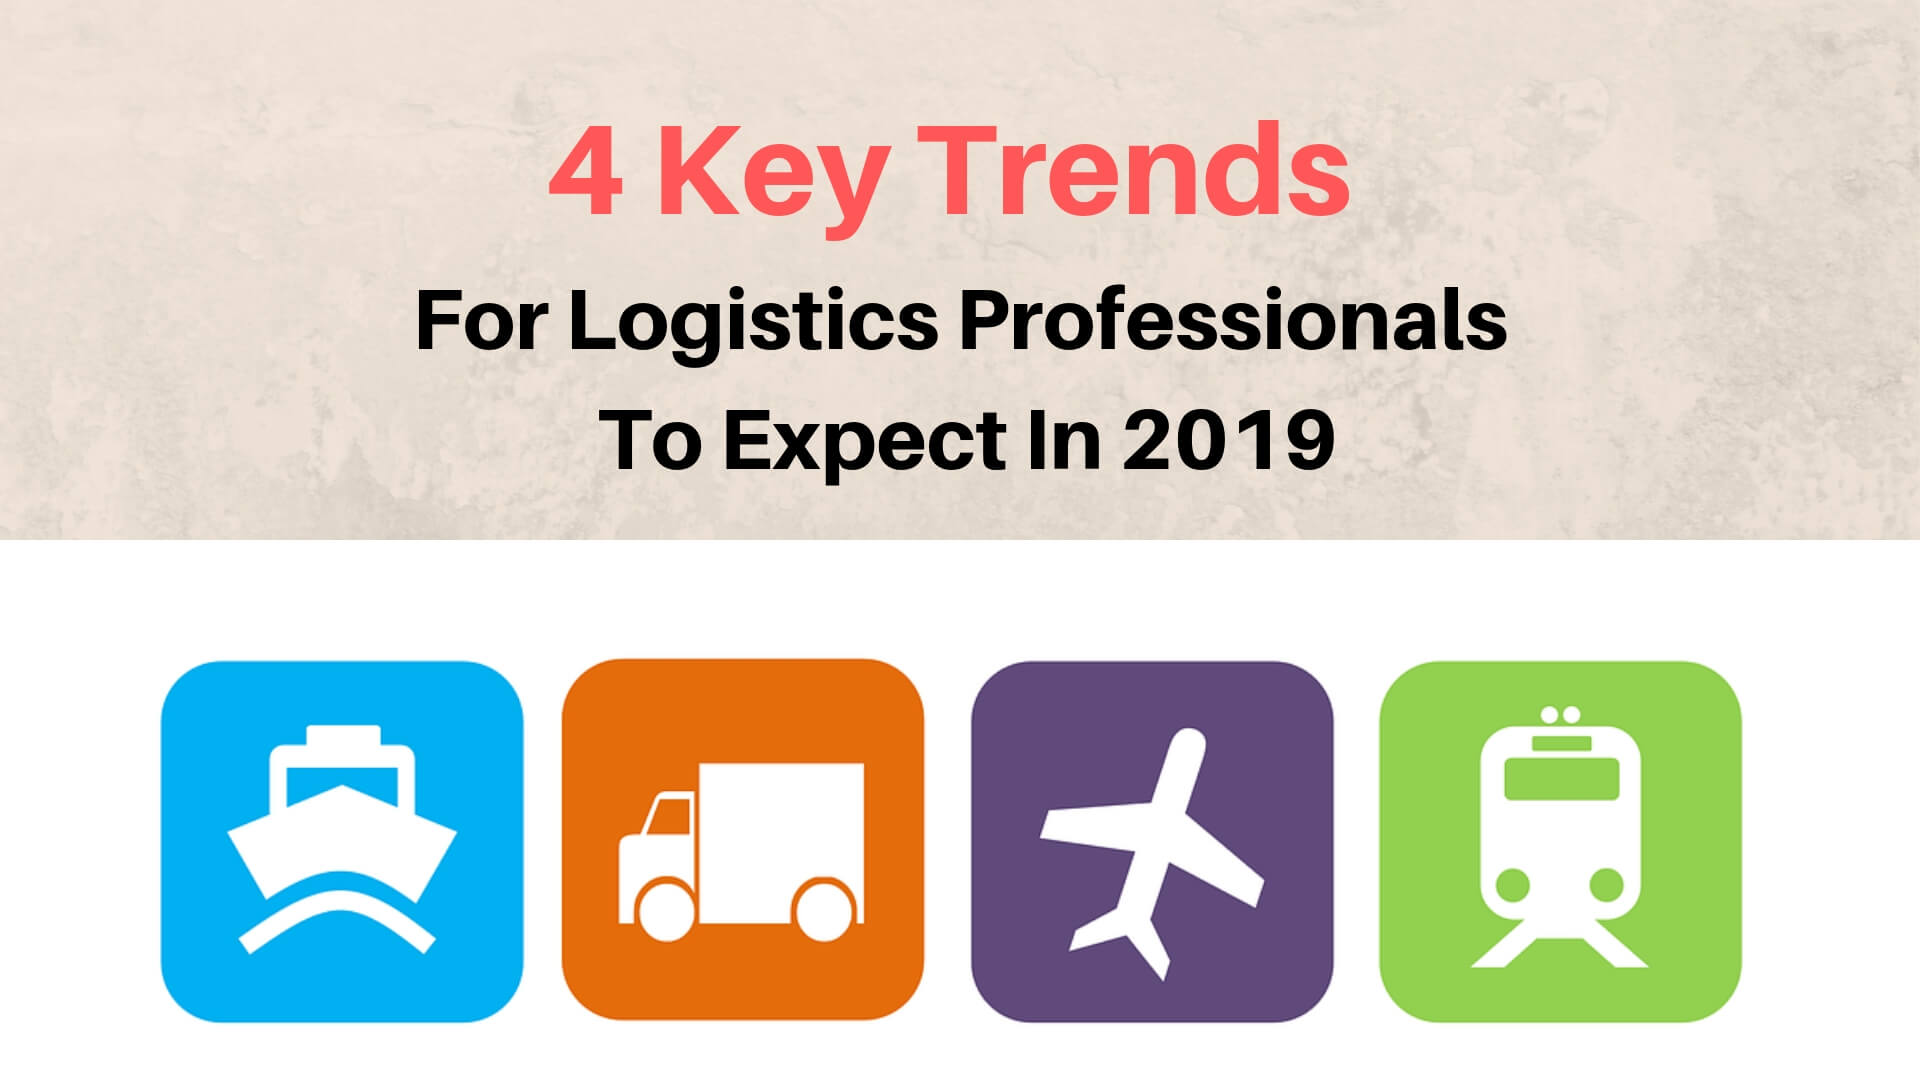 4 Key Trends For Logistics Professionals To Expect In 2019